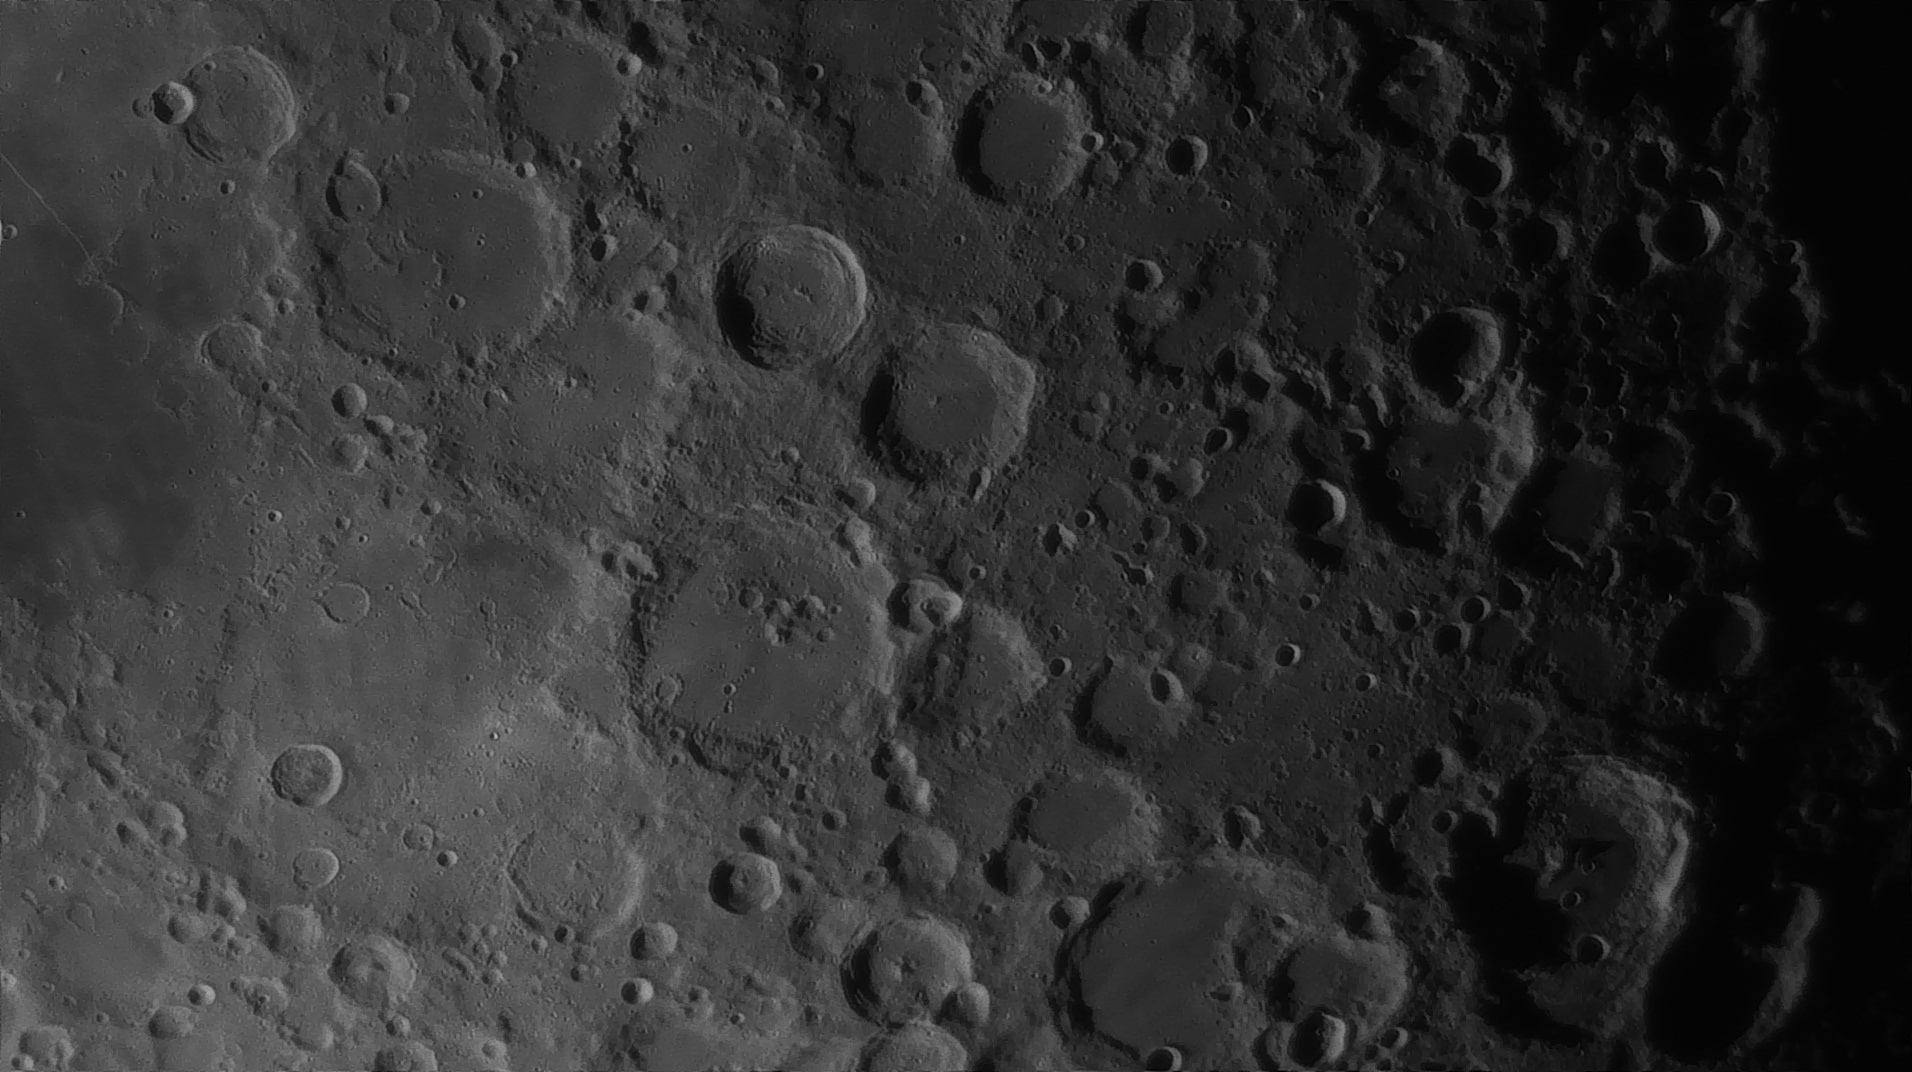 5e51961f6129a_Moon_054541_160120_ZWOASI290MM_Rouge_23A_AS_P35_lapl6_ap910_AI_Deconvolution_18--.jpg.36c9b17799532af50b26850ba212cc6e.jpg